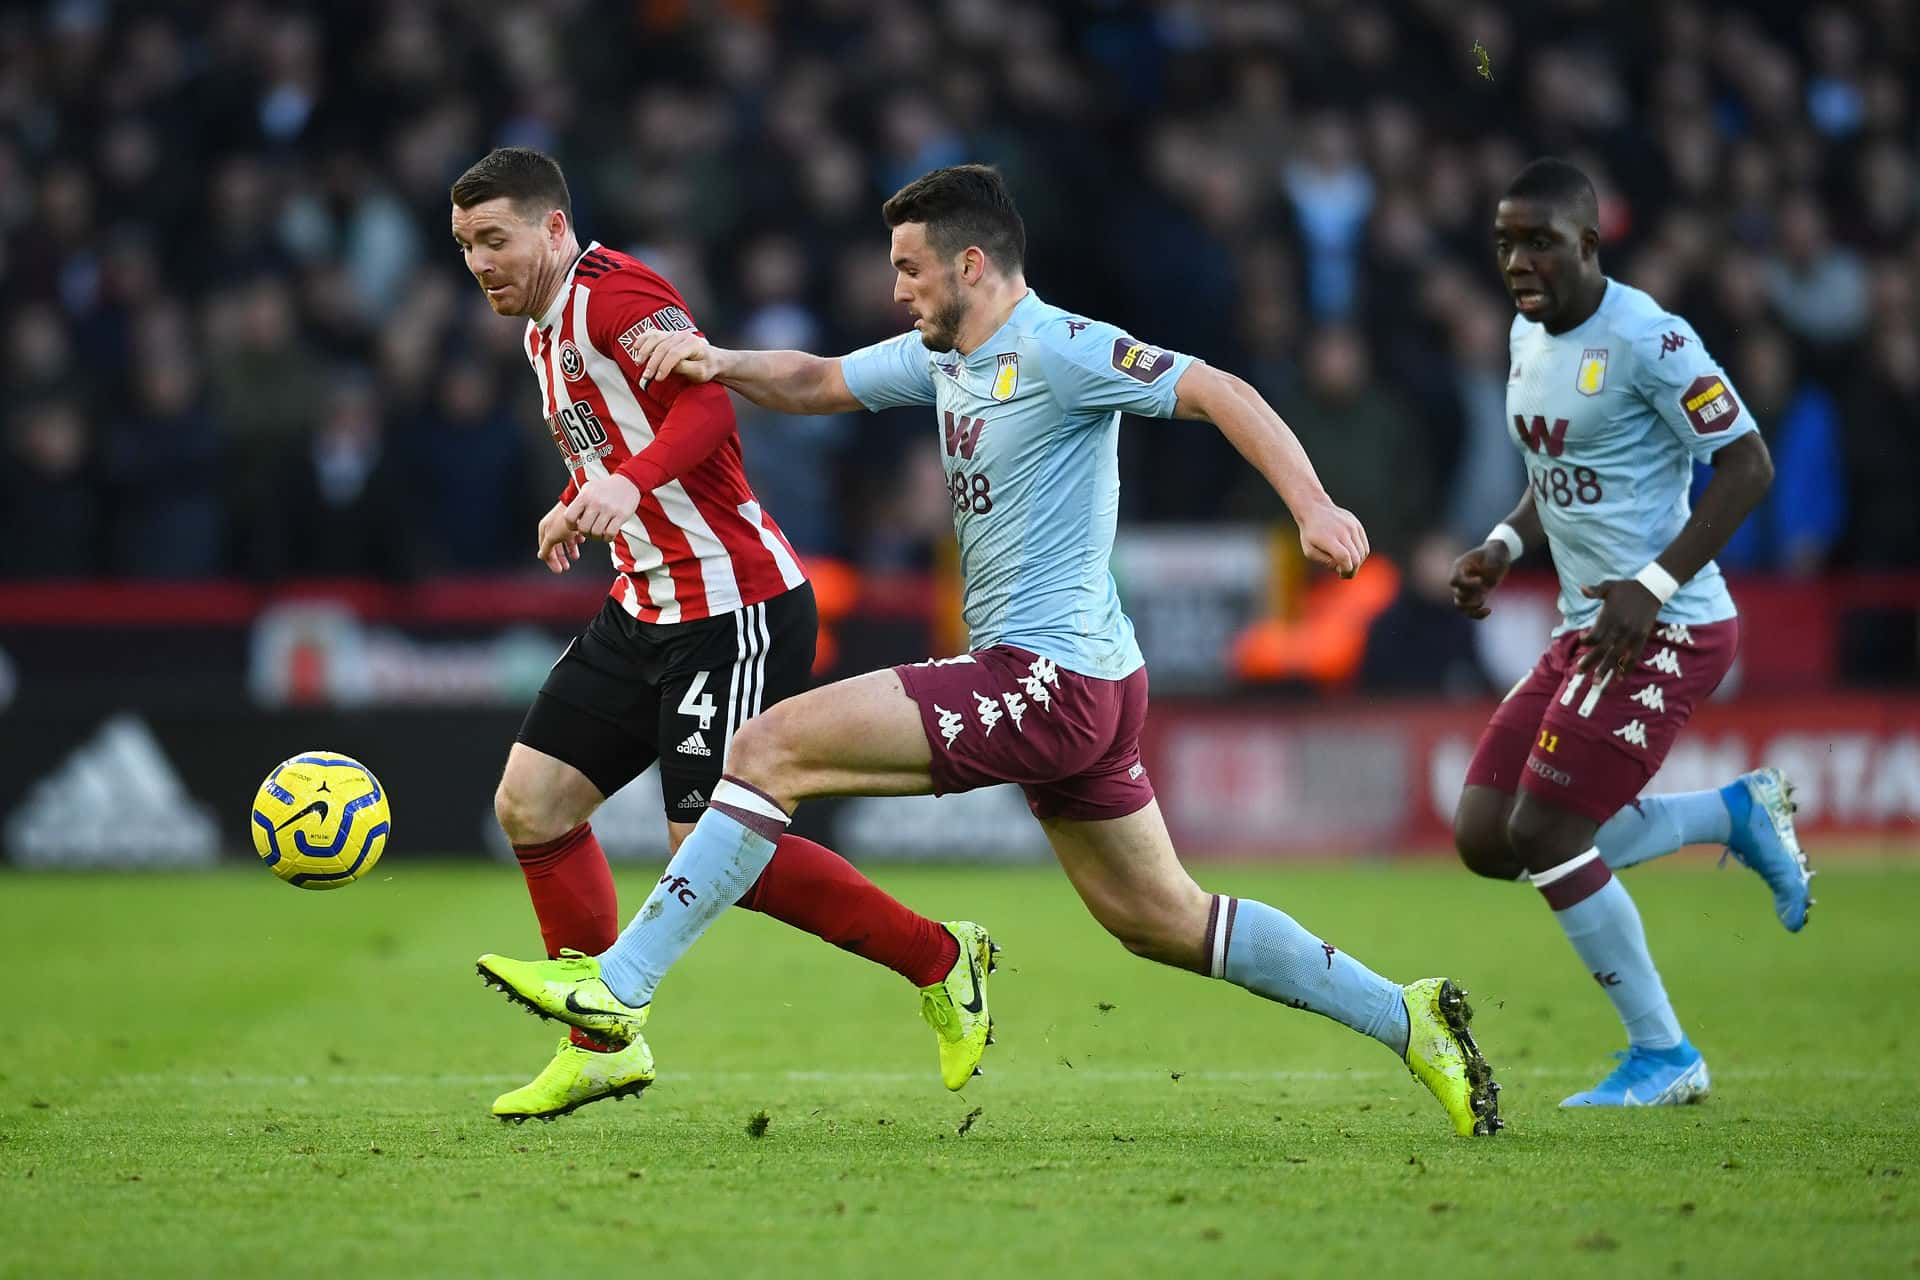 sheffield united vs aston villa - photo #2